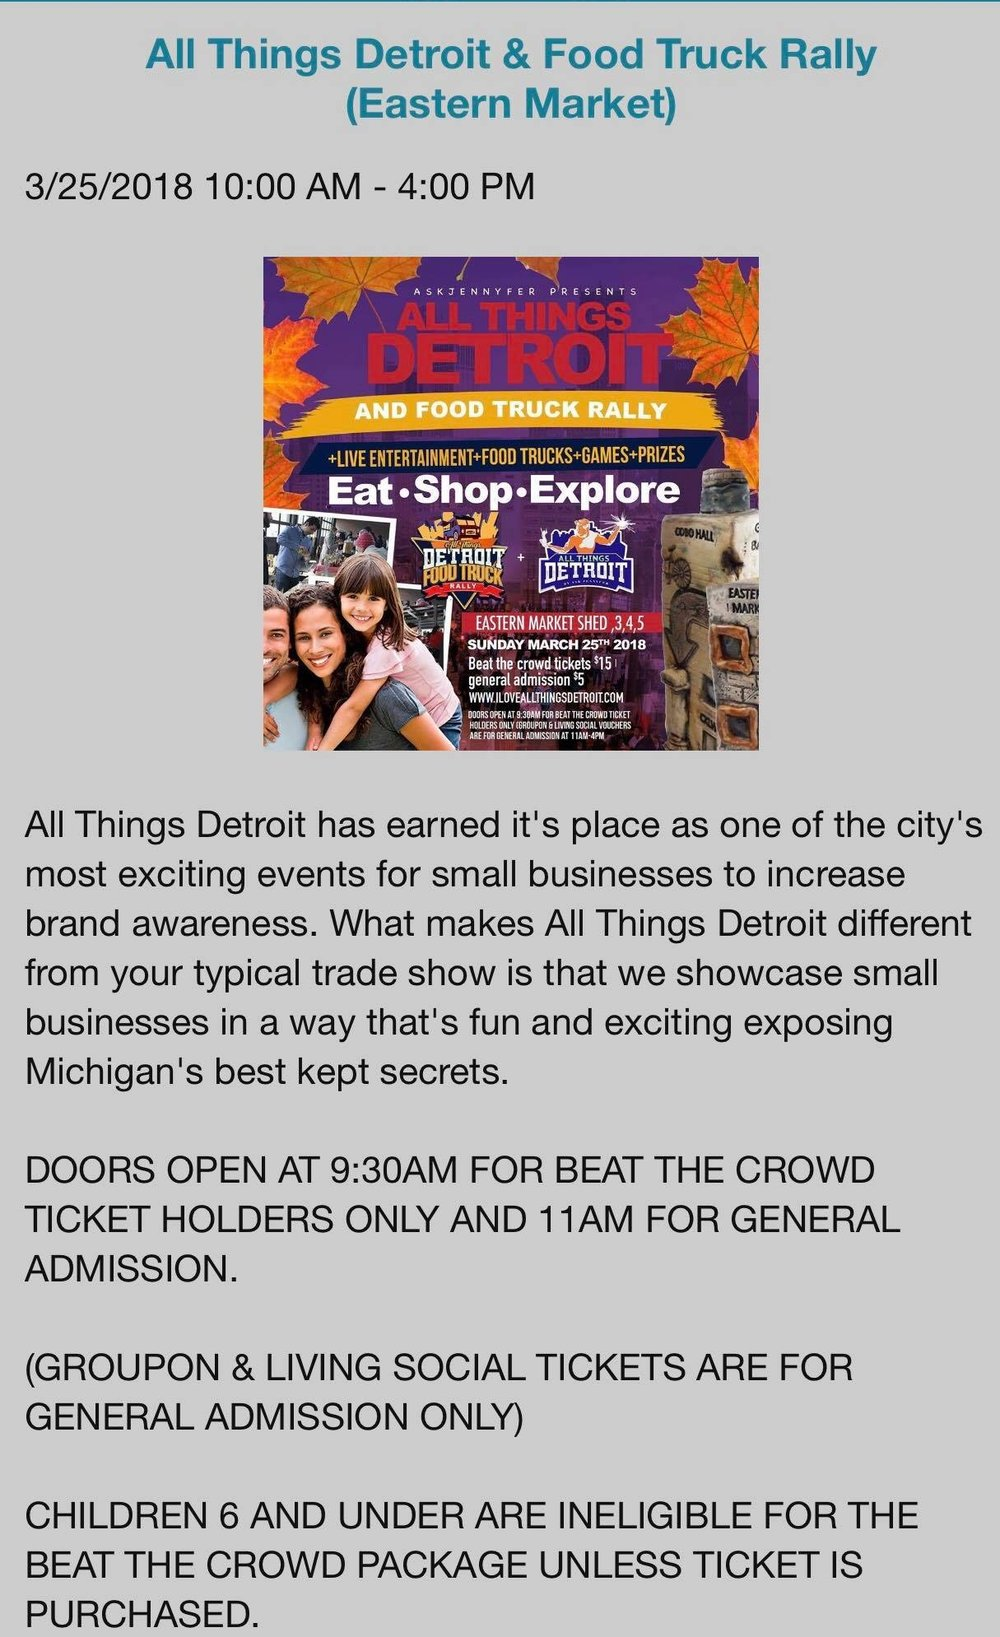 Eastern Market Corporation   2934 Russell St, Detroit, Michigan 48207